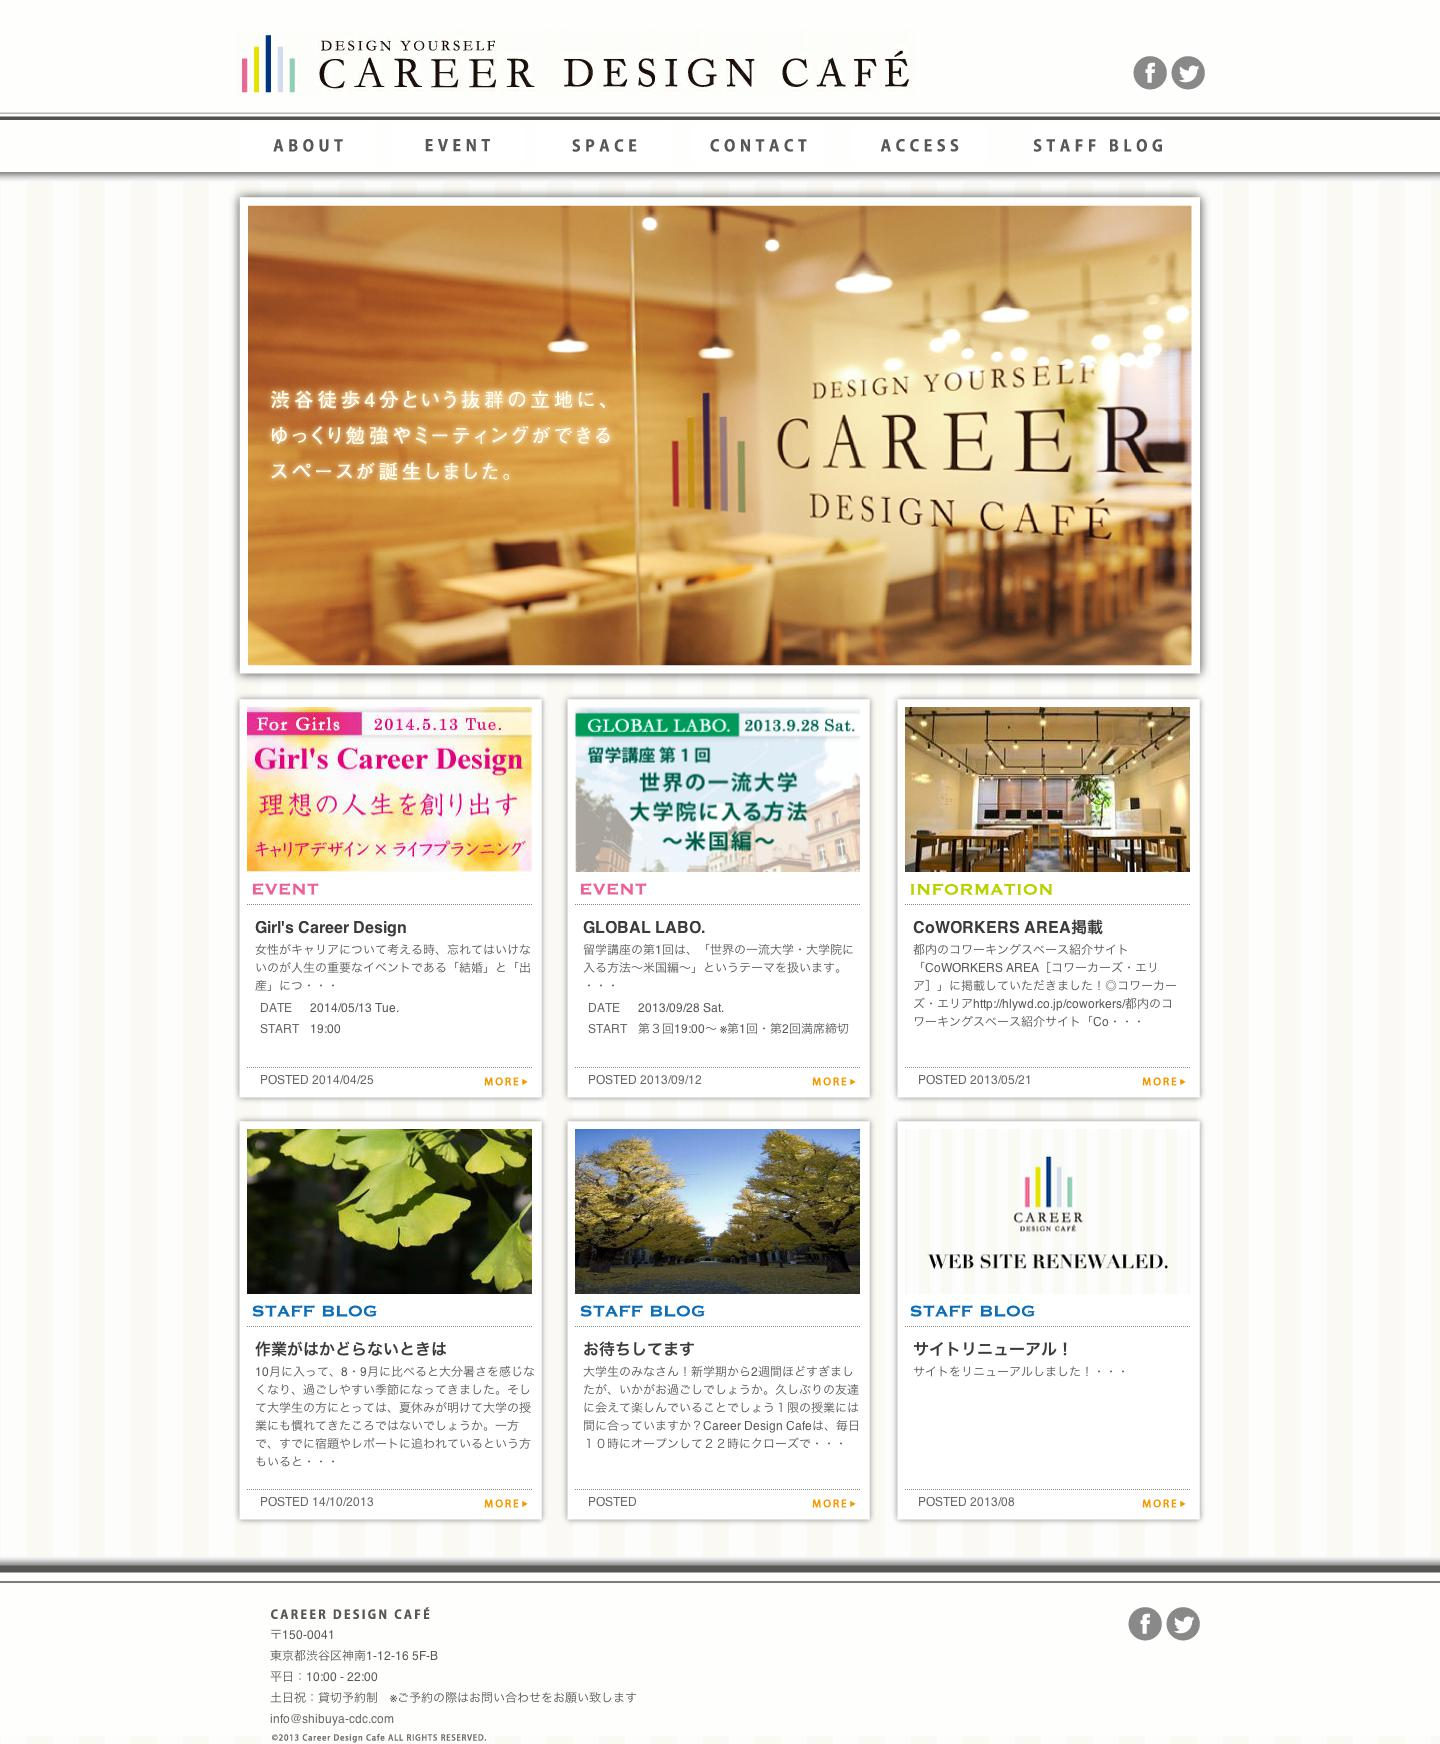 CAREER DESIGN CAFE